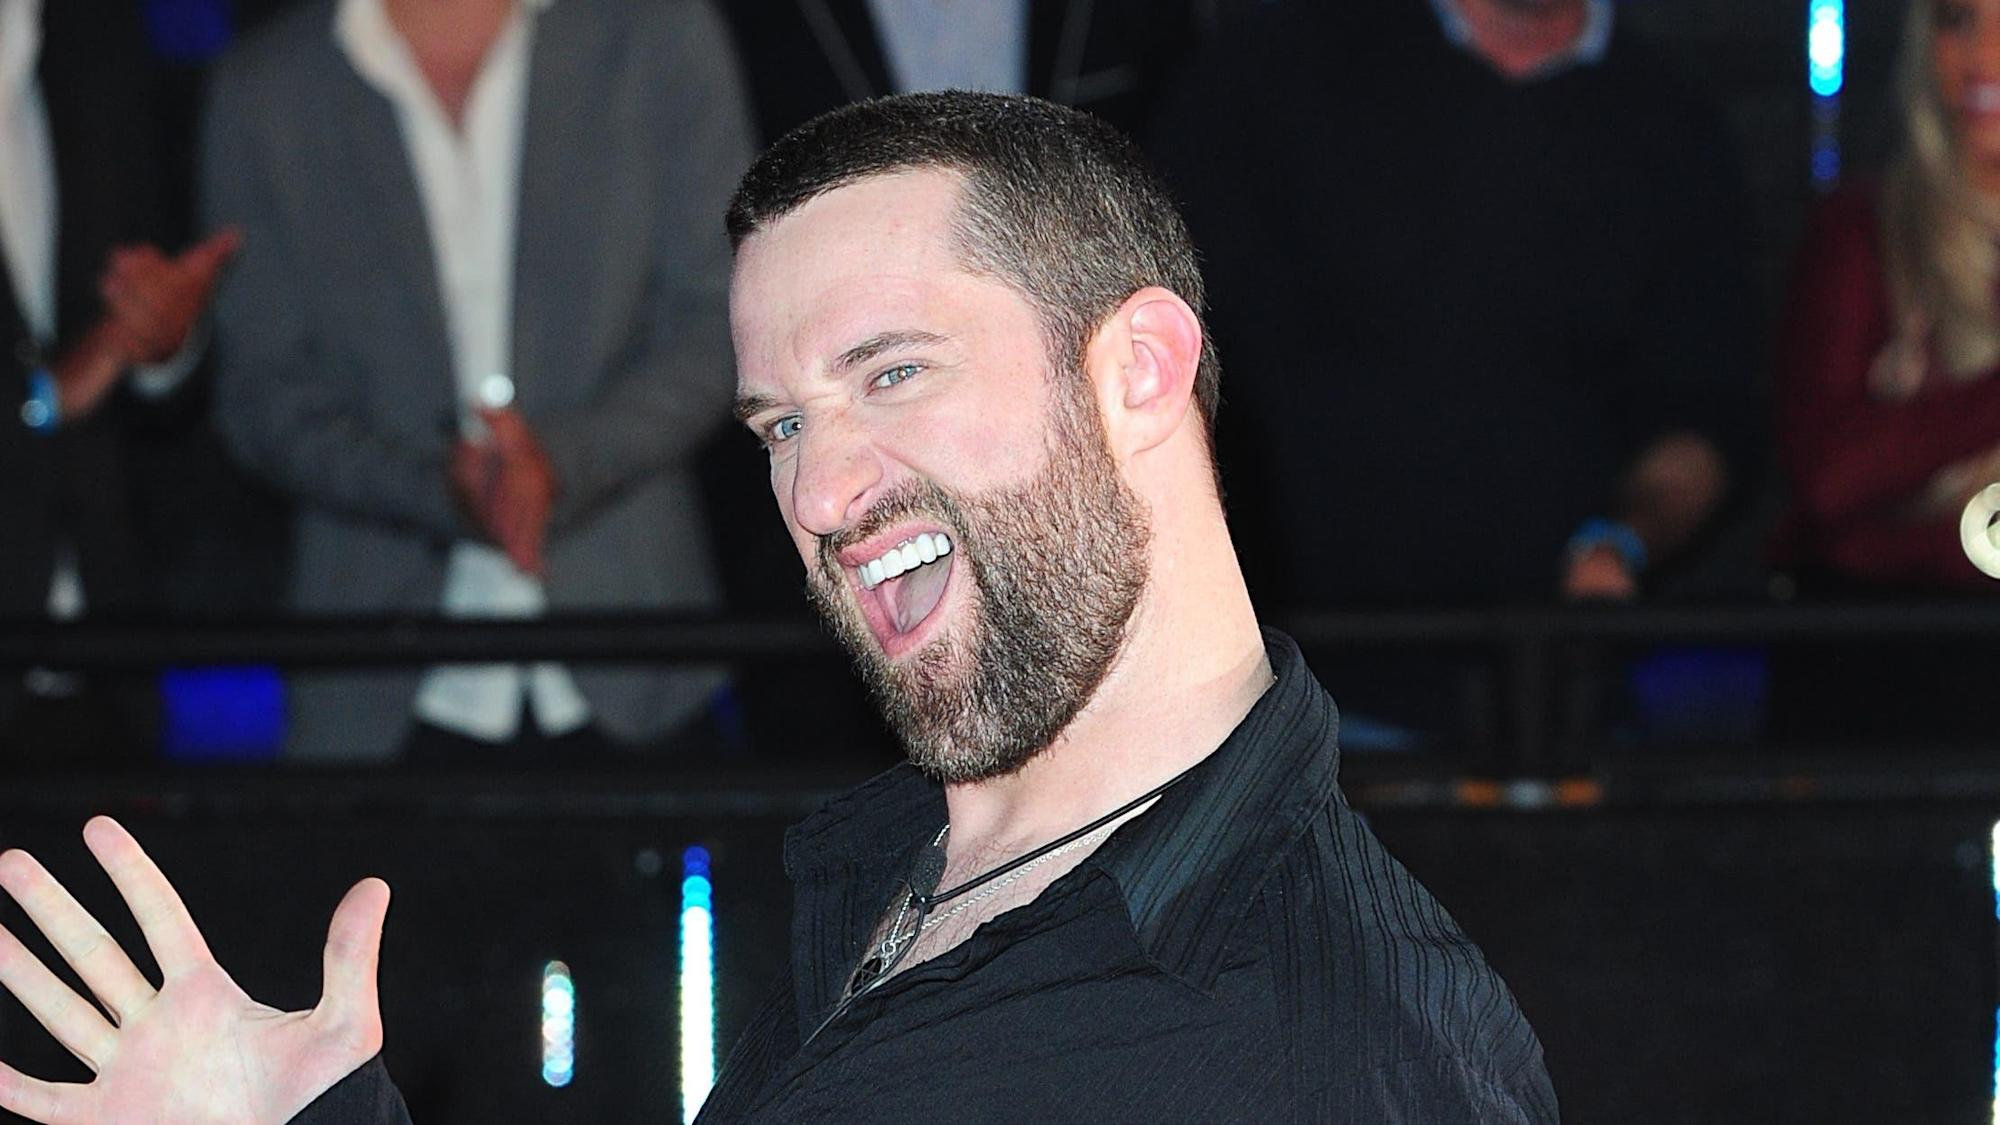 Saved By The Bell star Dustin Diamond has cancer, representative says